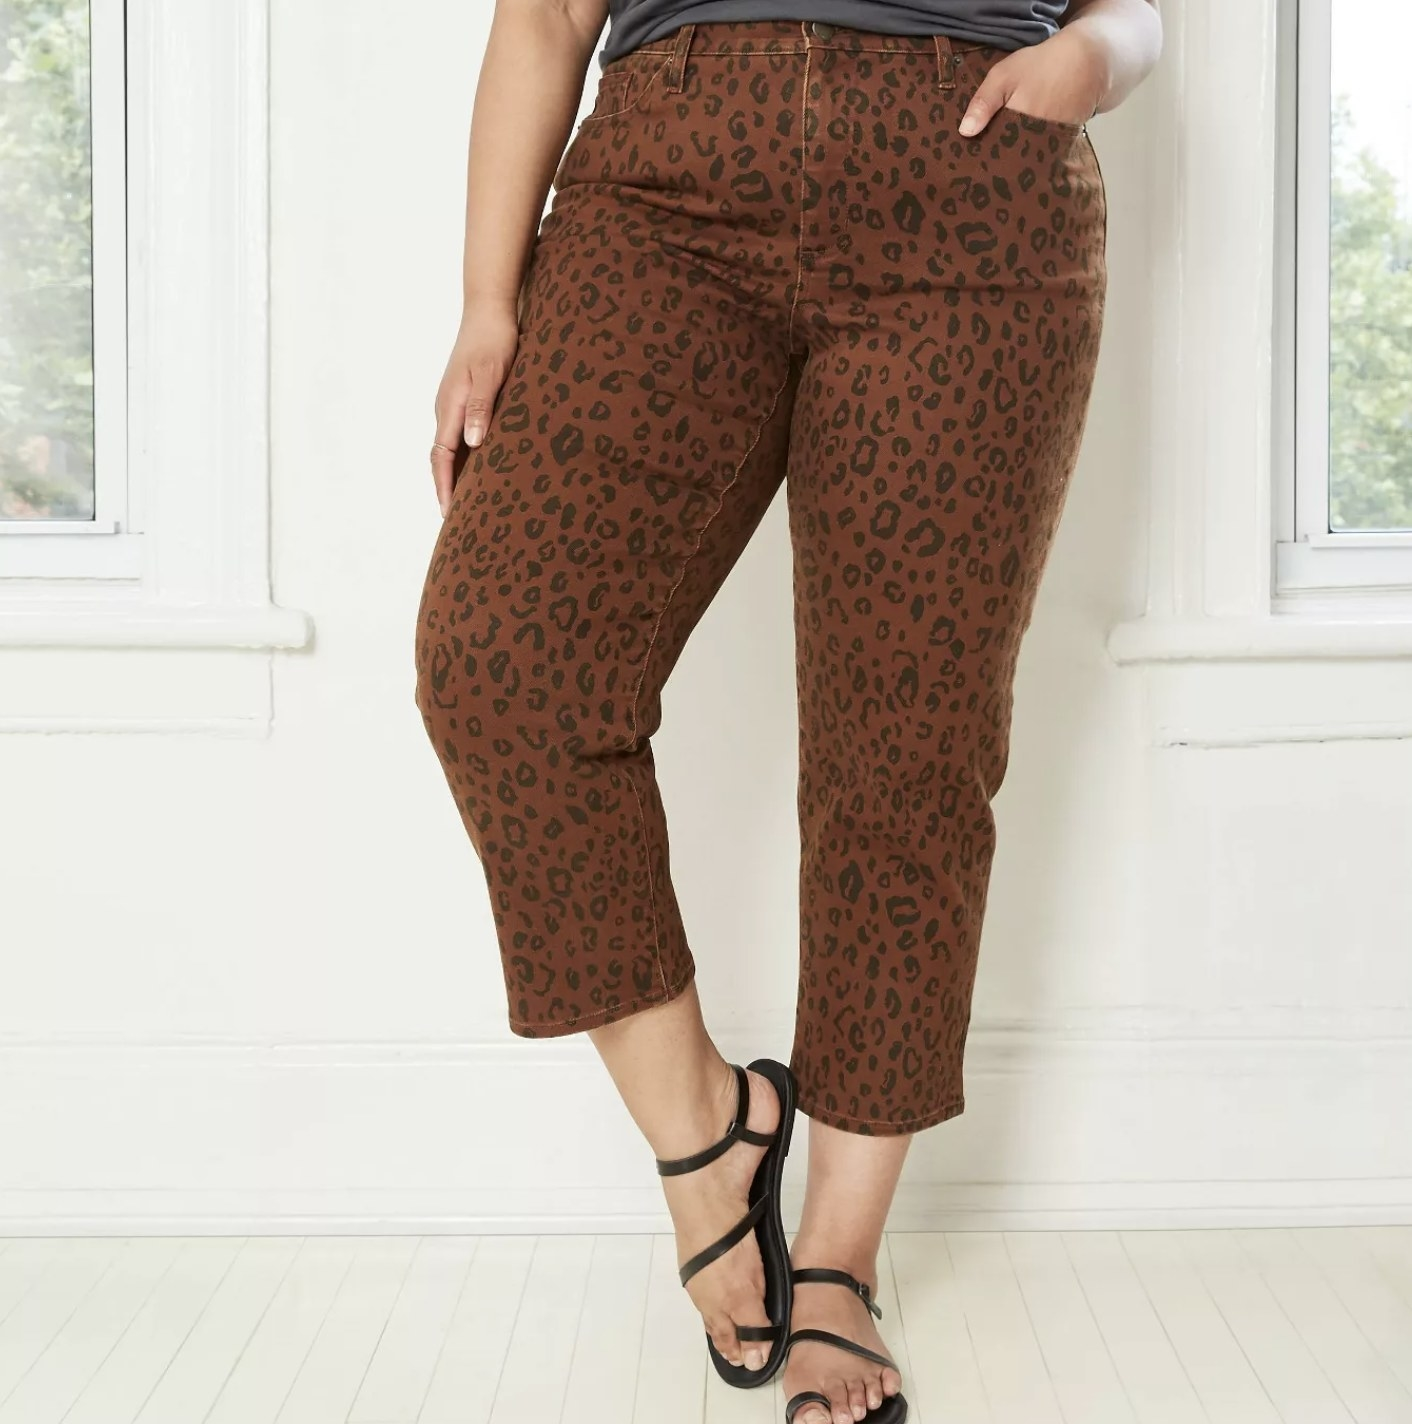 Model is wearing leopard print cropped high waisted jeans